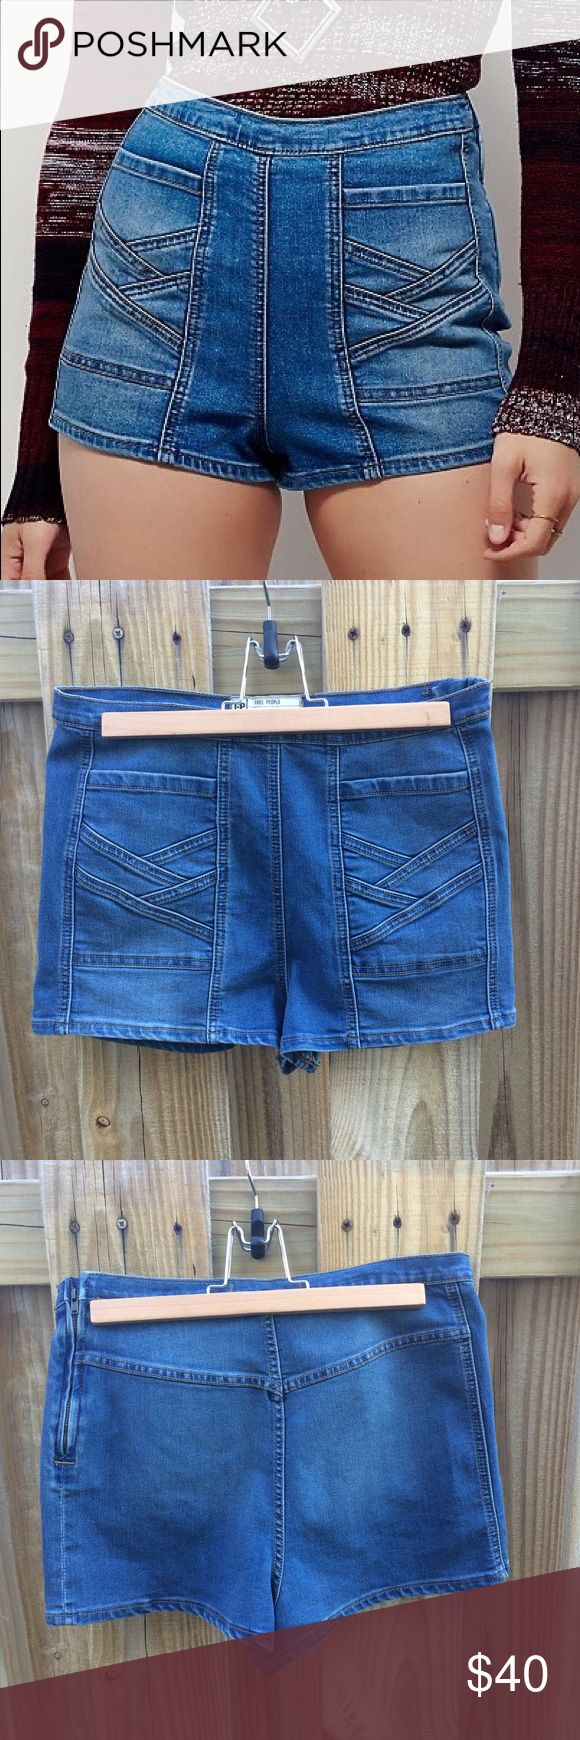 """⬇️💸Free People Radar Love High Rise Short ⬇️💸10% PRICE DROP💸⬇️ NWT amazing Free People Radar Love High Rise Shorts, tagged 29"""" (prob best for M). Medium wash denim with zig-zag pattern on front pockets. Definitely a statement piece. Fabric has some stretch to it, and there is a side zipper on left hip with a hook-eye clasp for snug fit. Never worn & sold out online. #fp #stretch #jean #boho #hotpants #waist -- Approx 29"""" waist/hips, 12"""" length Free People Shorts Jean Shorts"""